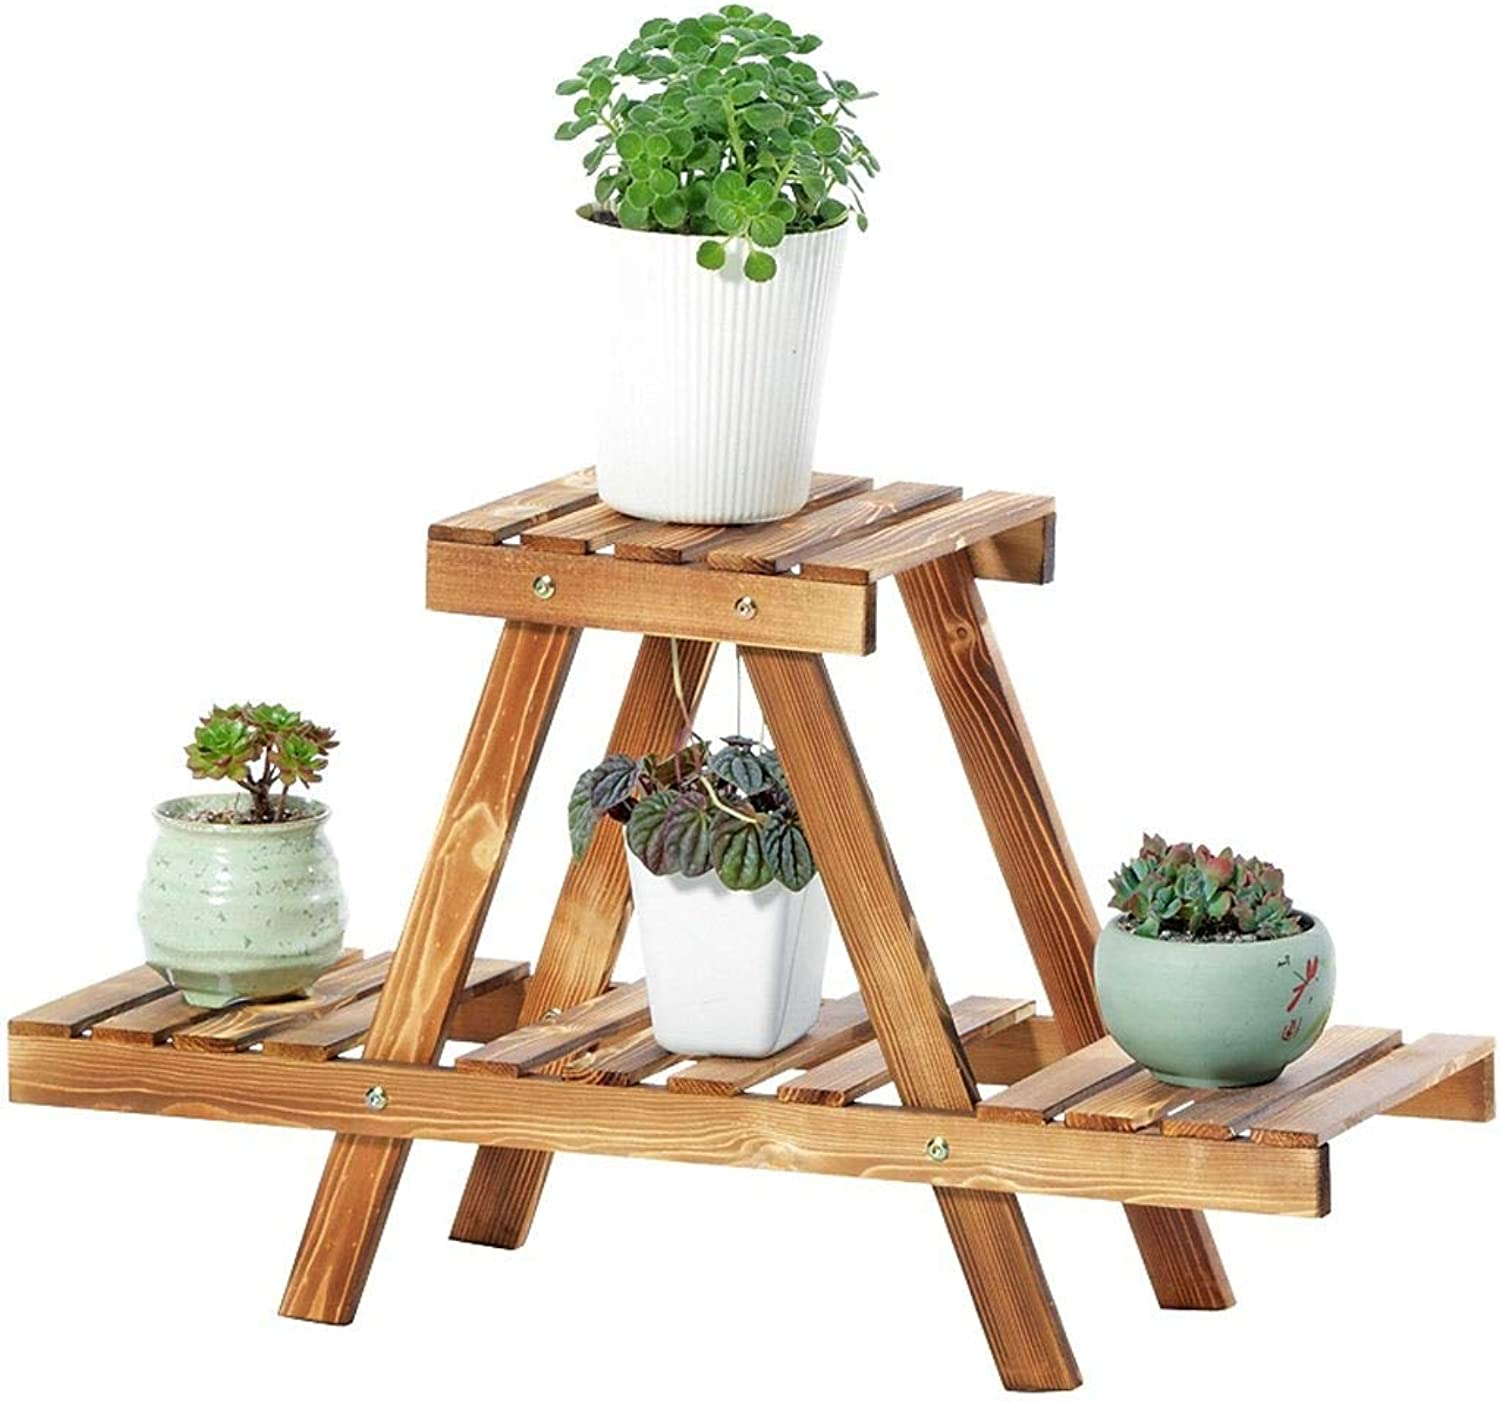 Yalztc-zyq16 Small Solid Wood Multi-Layer Flower Stand Floor-Standing Wooden Design 2 Layers of Independent Shelves Decorative Flower Pot Display Stand, Toys Sundries Multi-Purpose Shelves